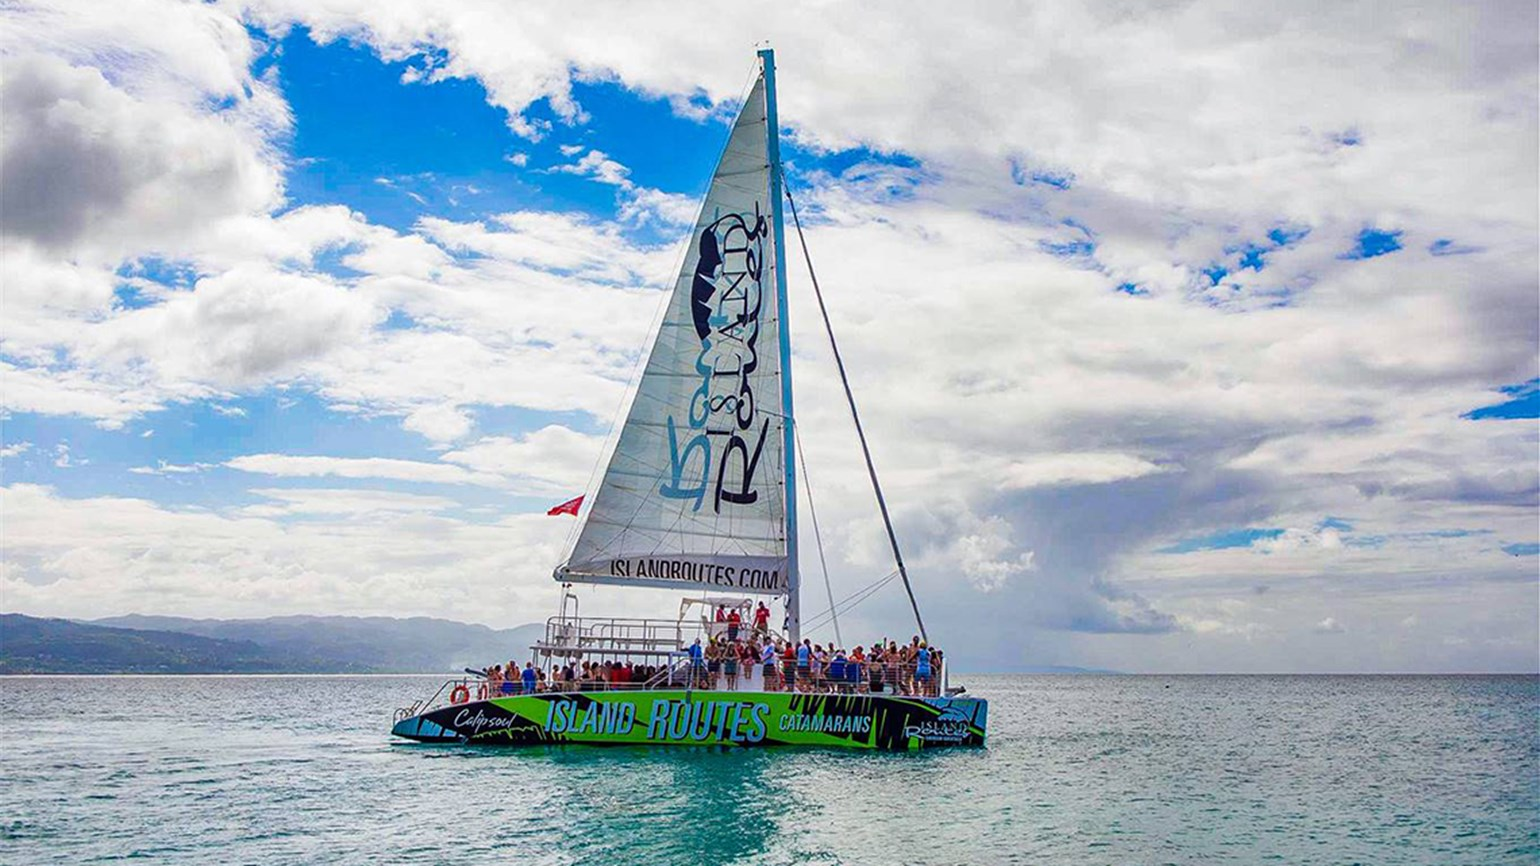 Island Routes launches catamaran tours in Ocho Rios